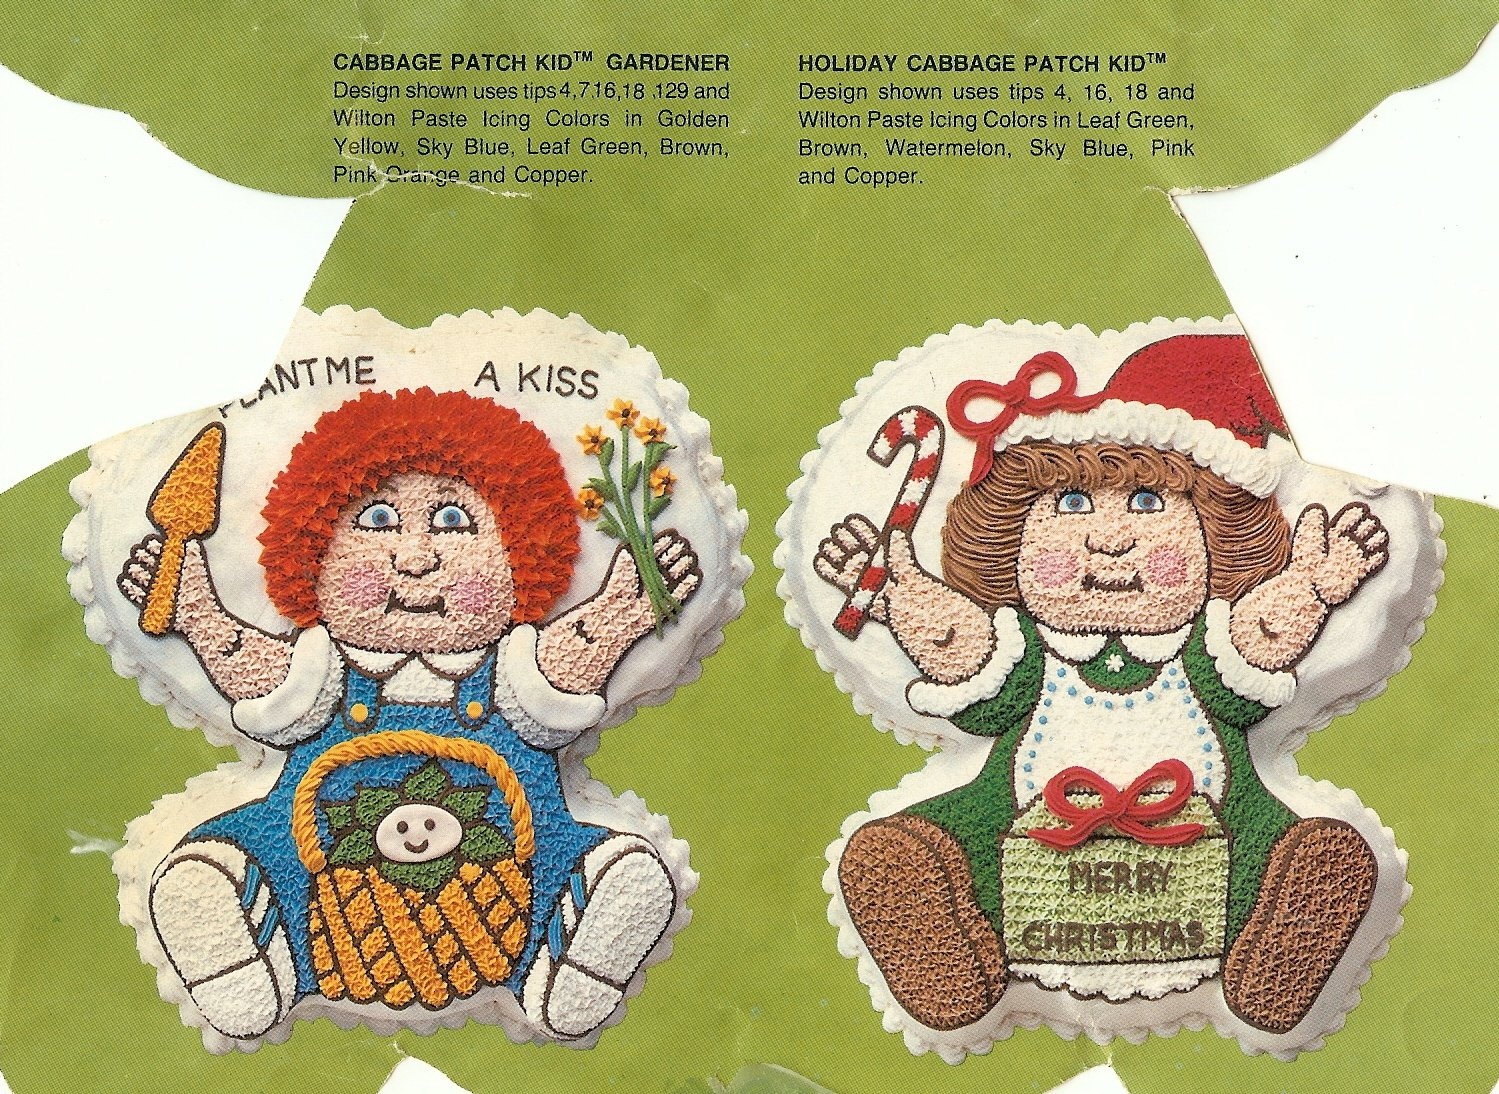 Wilton Cake Pan: Cabbage Patch Kids Baby Doll Dolly Cake Pan Mold (2105-1984, 1984) Retired